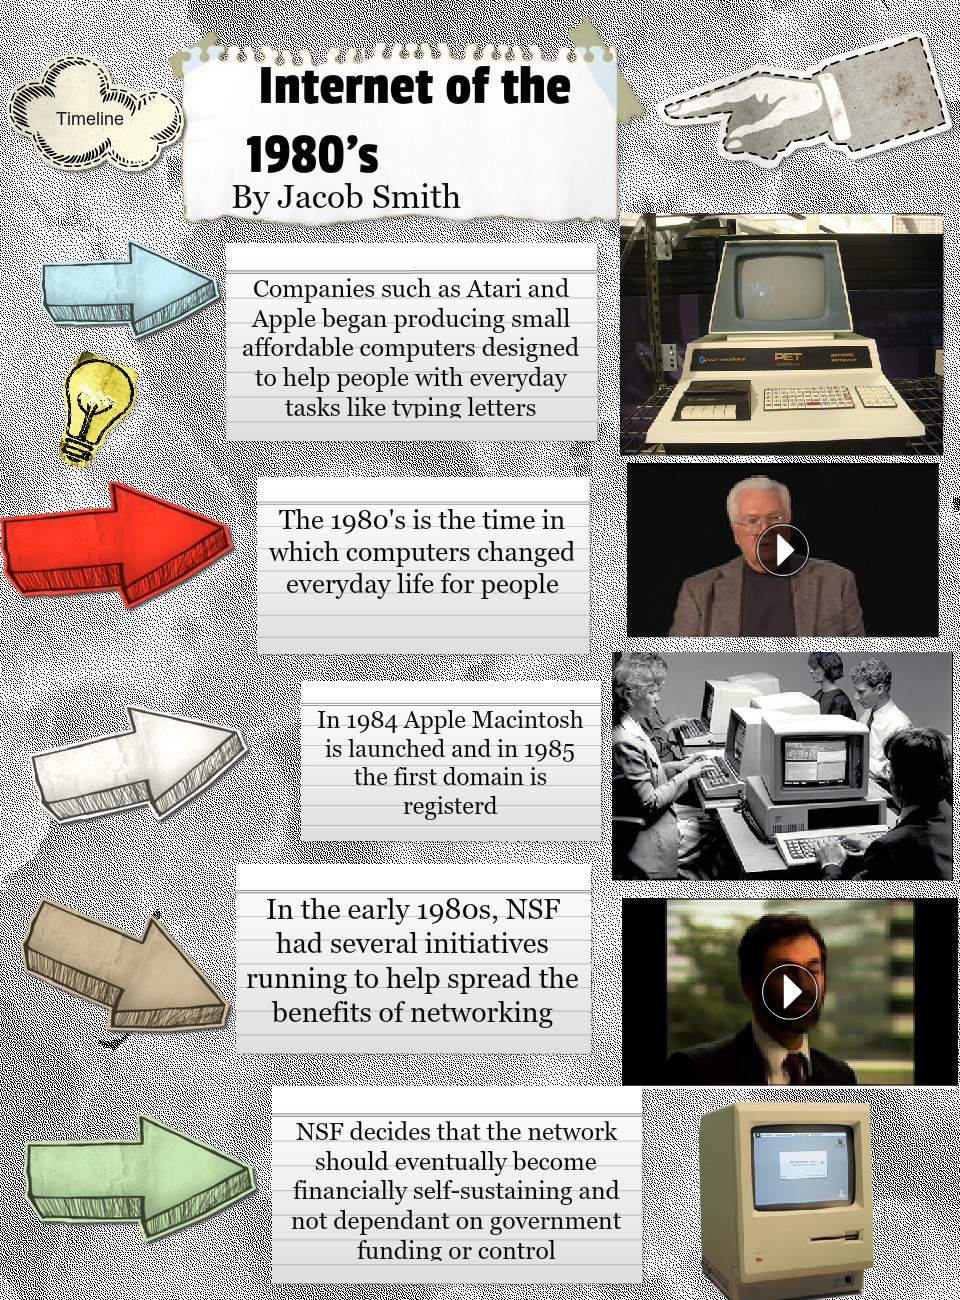 Internet of the 1980's